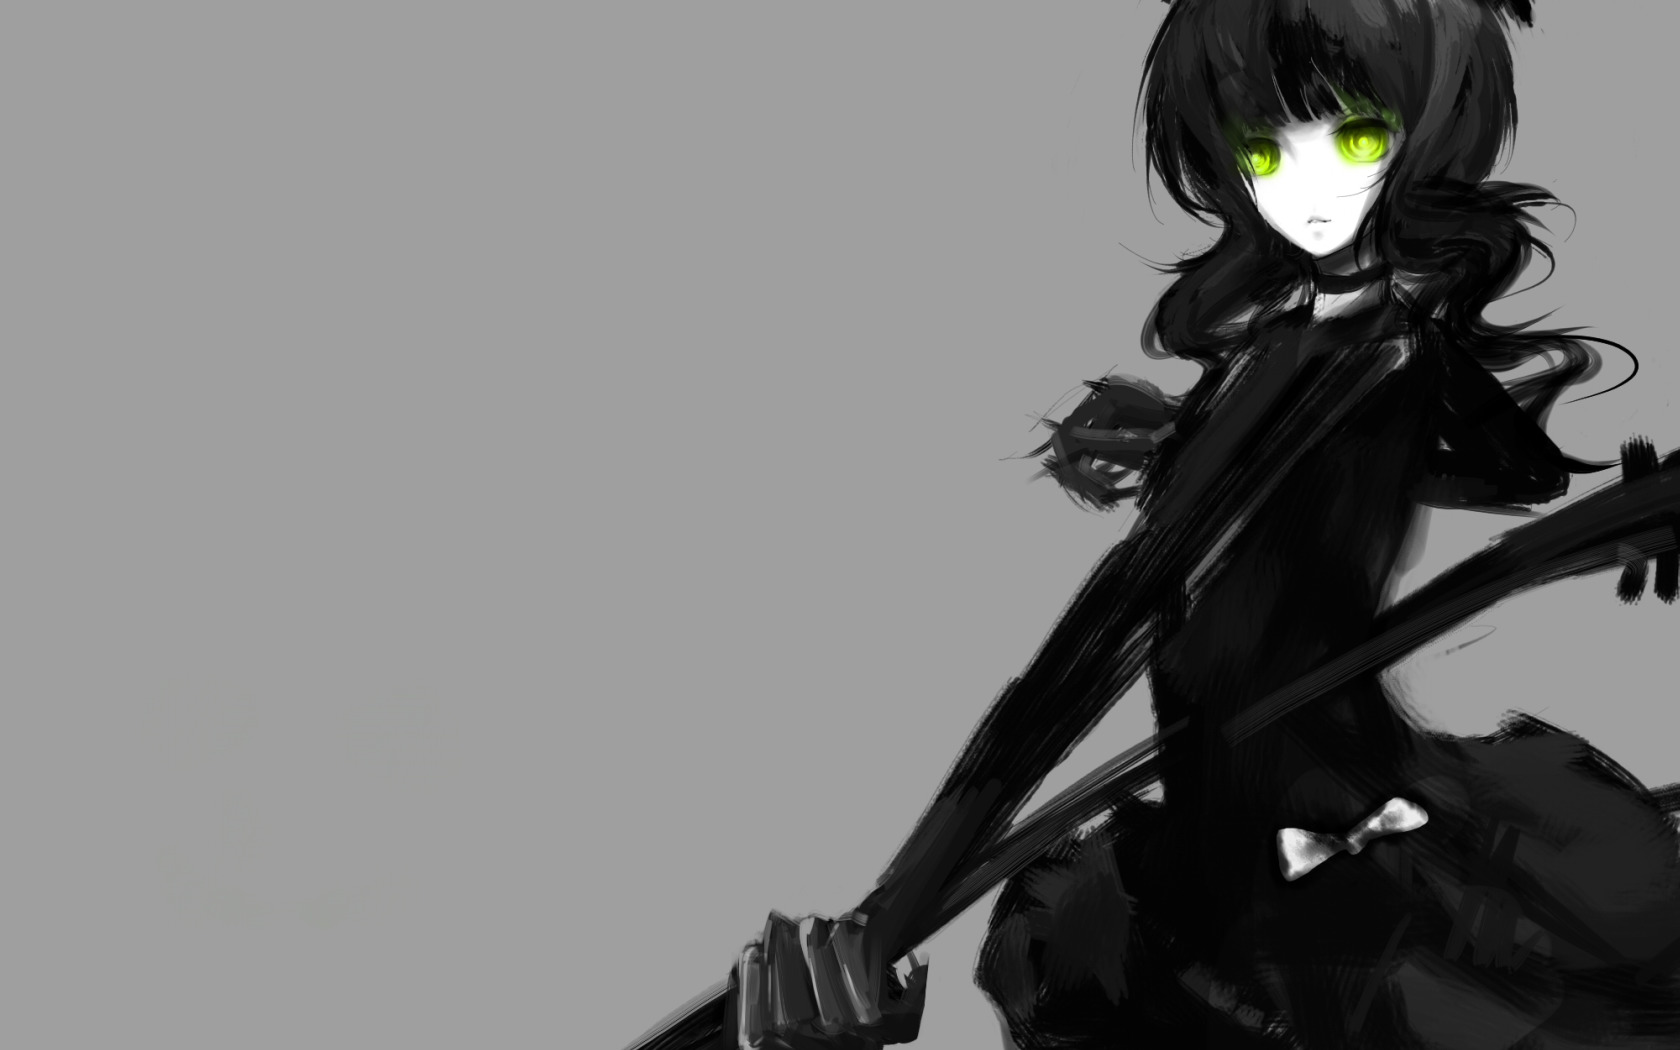 black rock Shooter dead HD Wallpaper